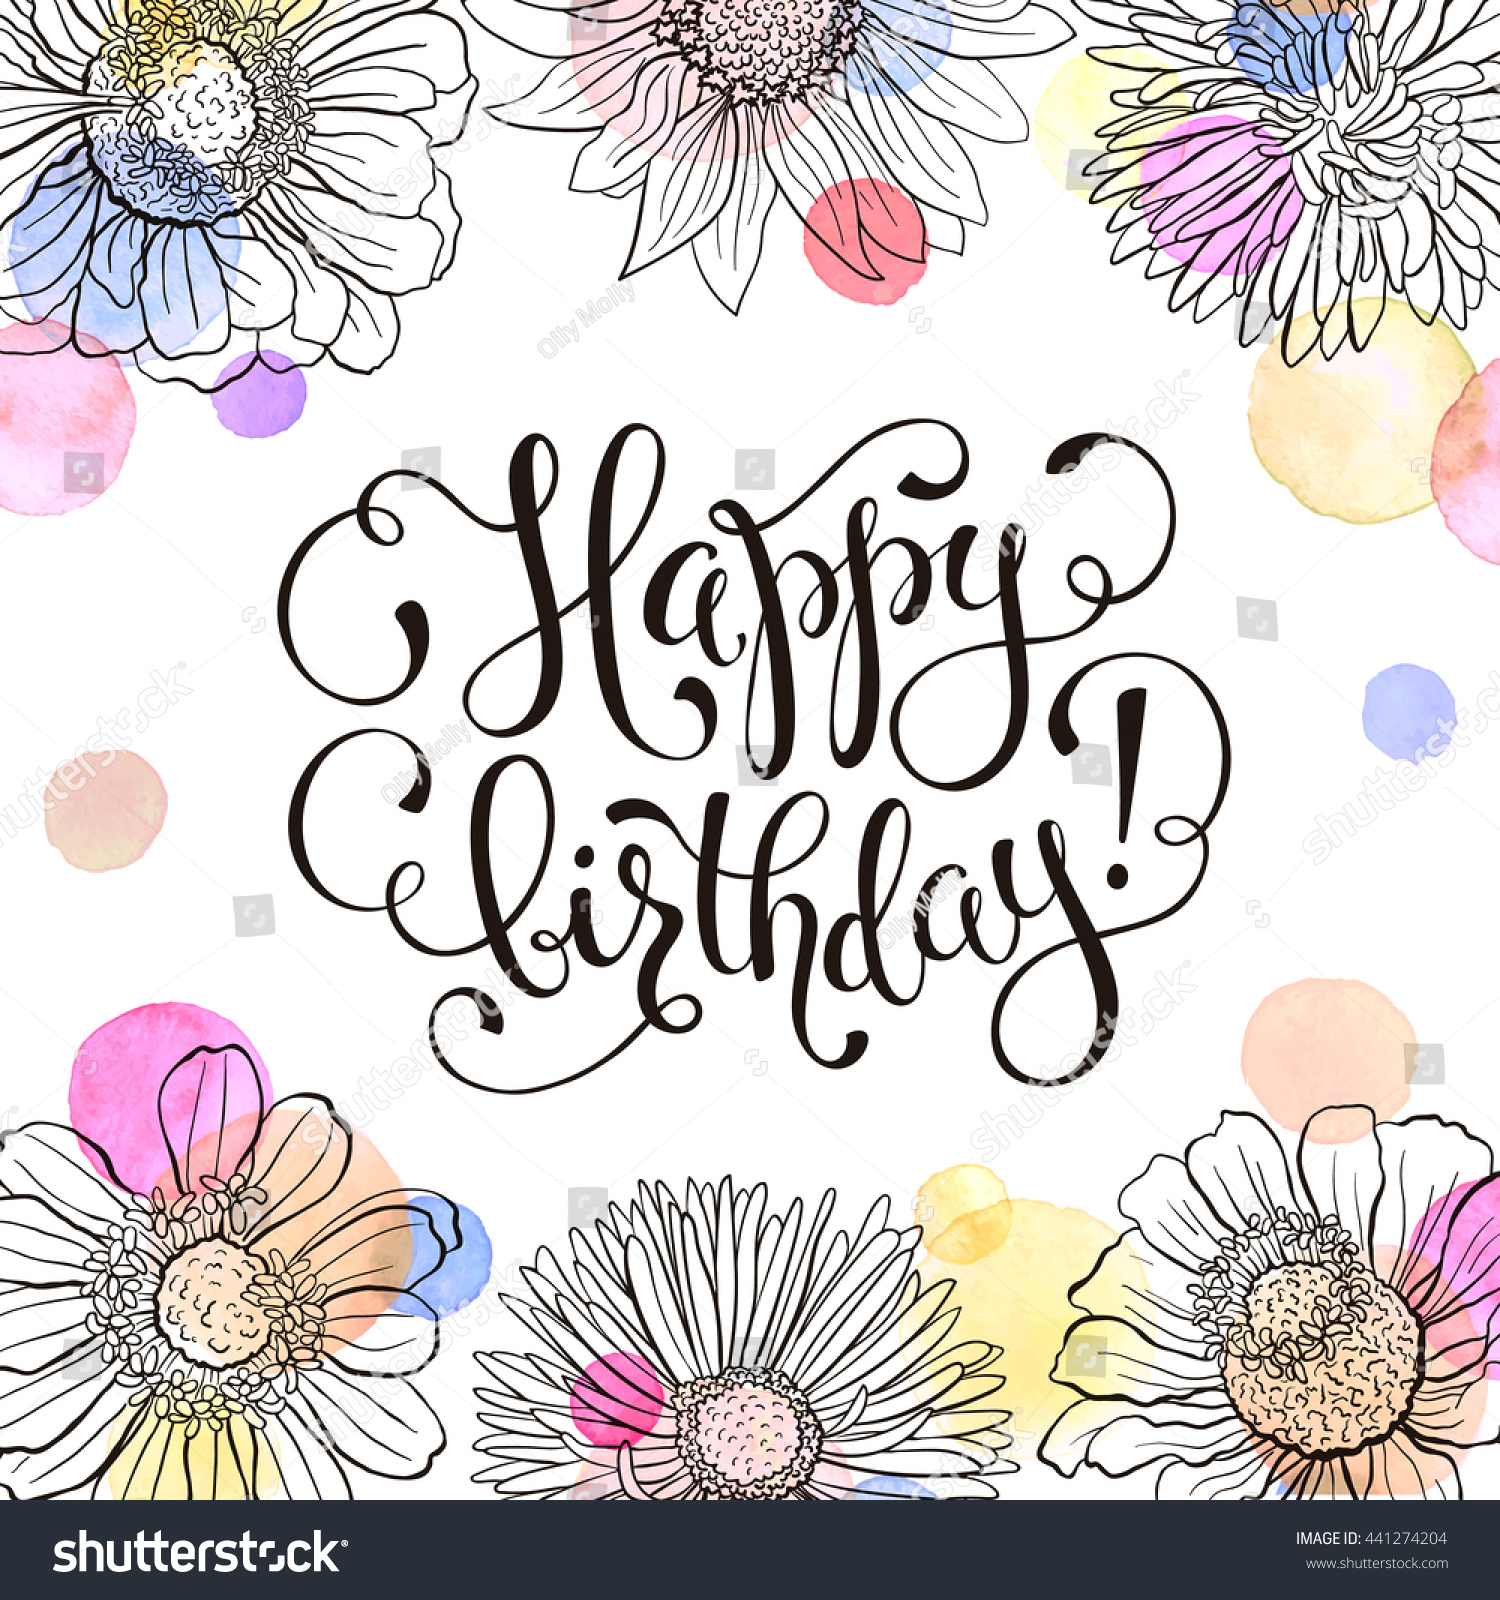 Happy birthday greeting card hand drawn stock vector 441274204 happy birthday greeting card hand drawn flowers frame with watercolor on white background birthday kristyandbryce Gallery